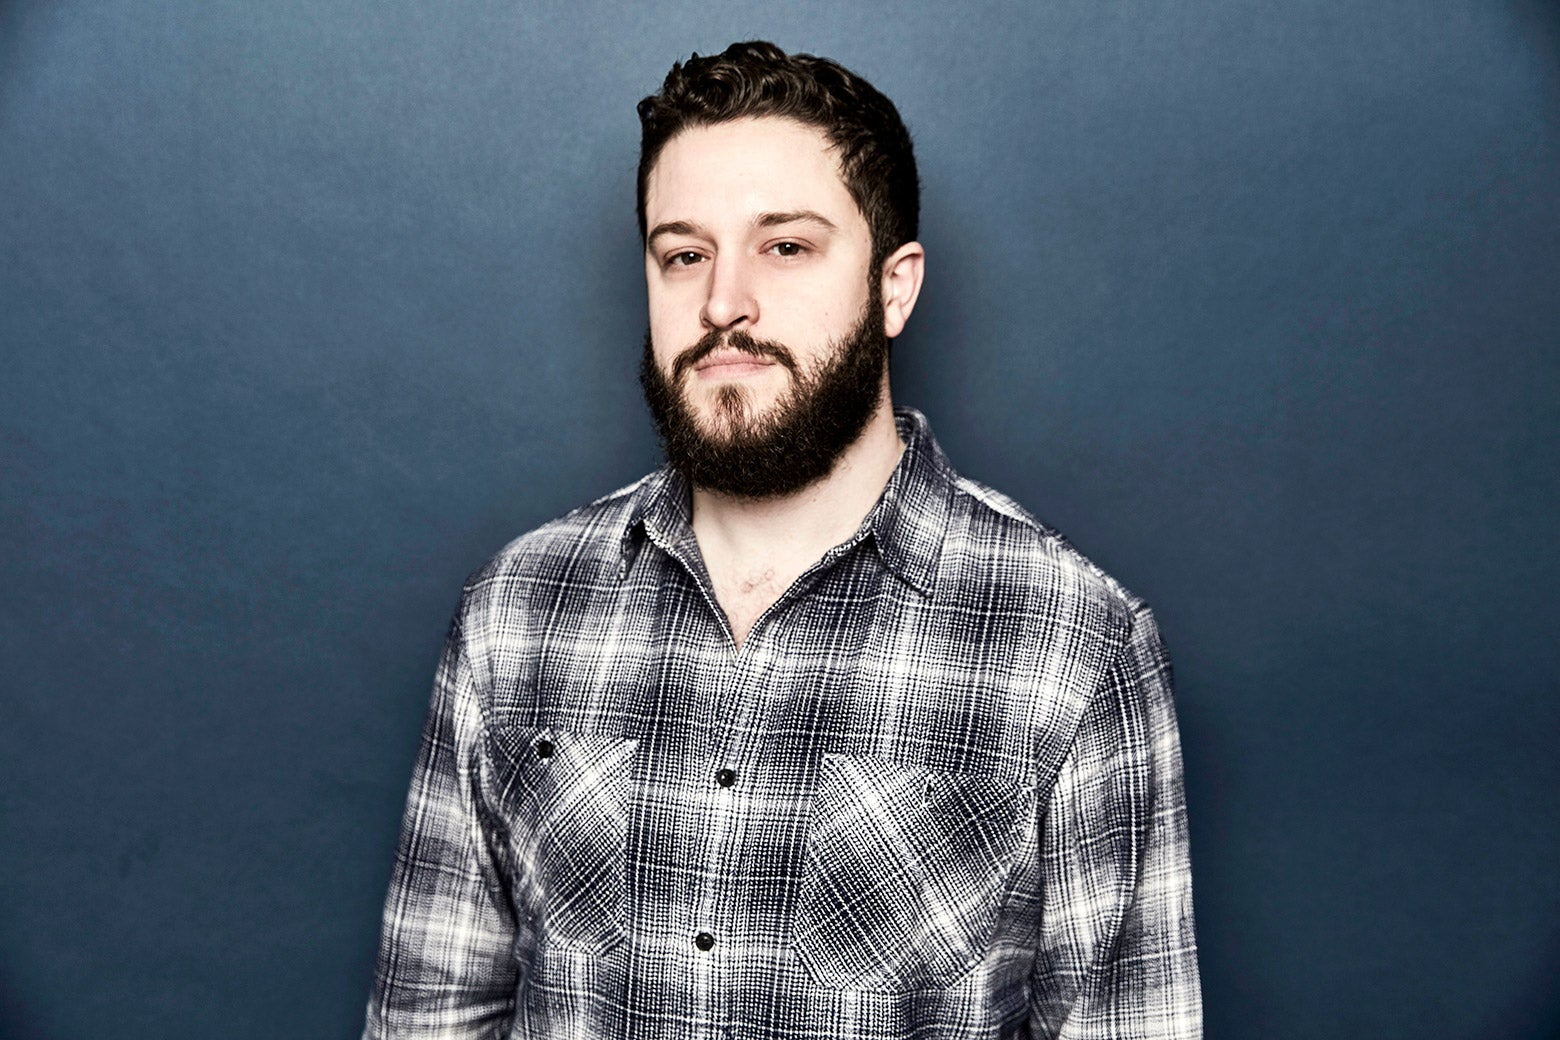 Cody Wilson poses for a portrait at the 2017 Sundance Film Festival.